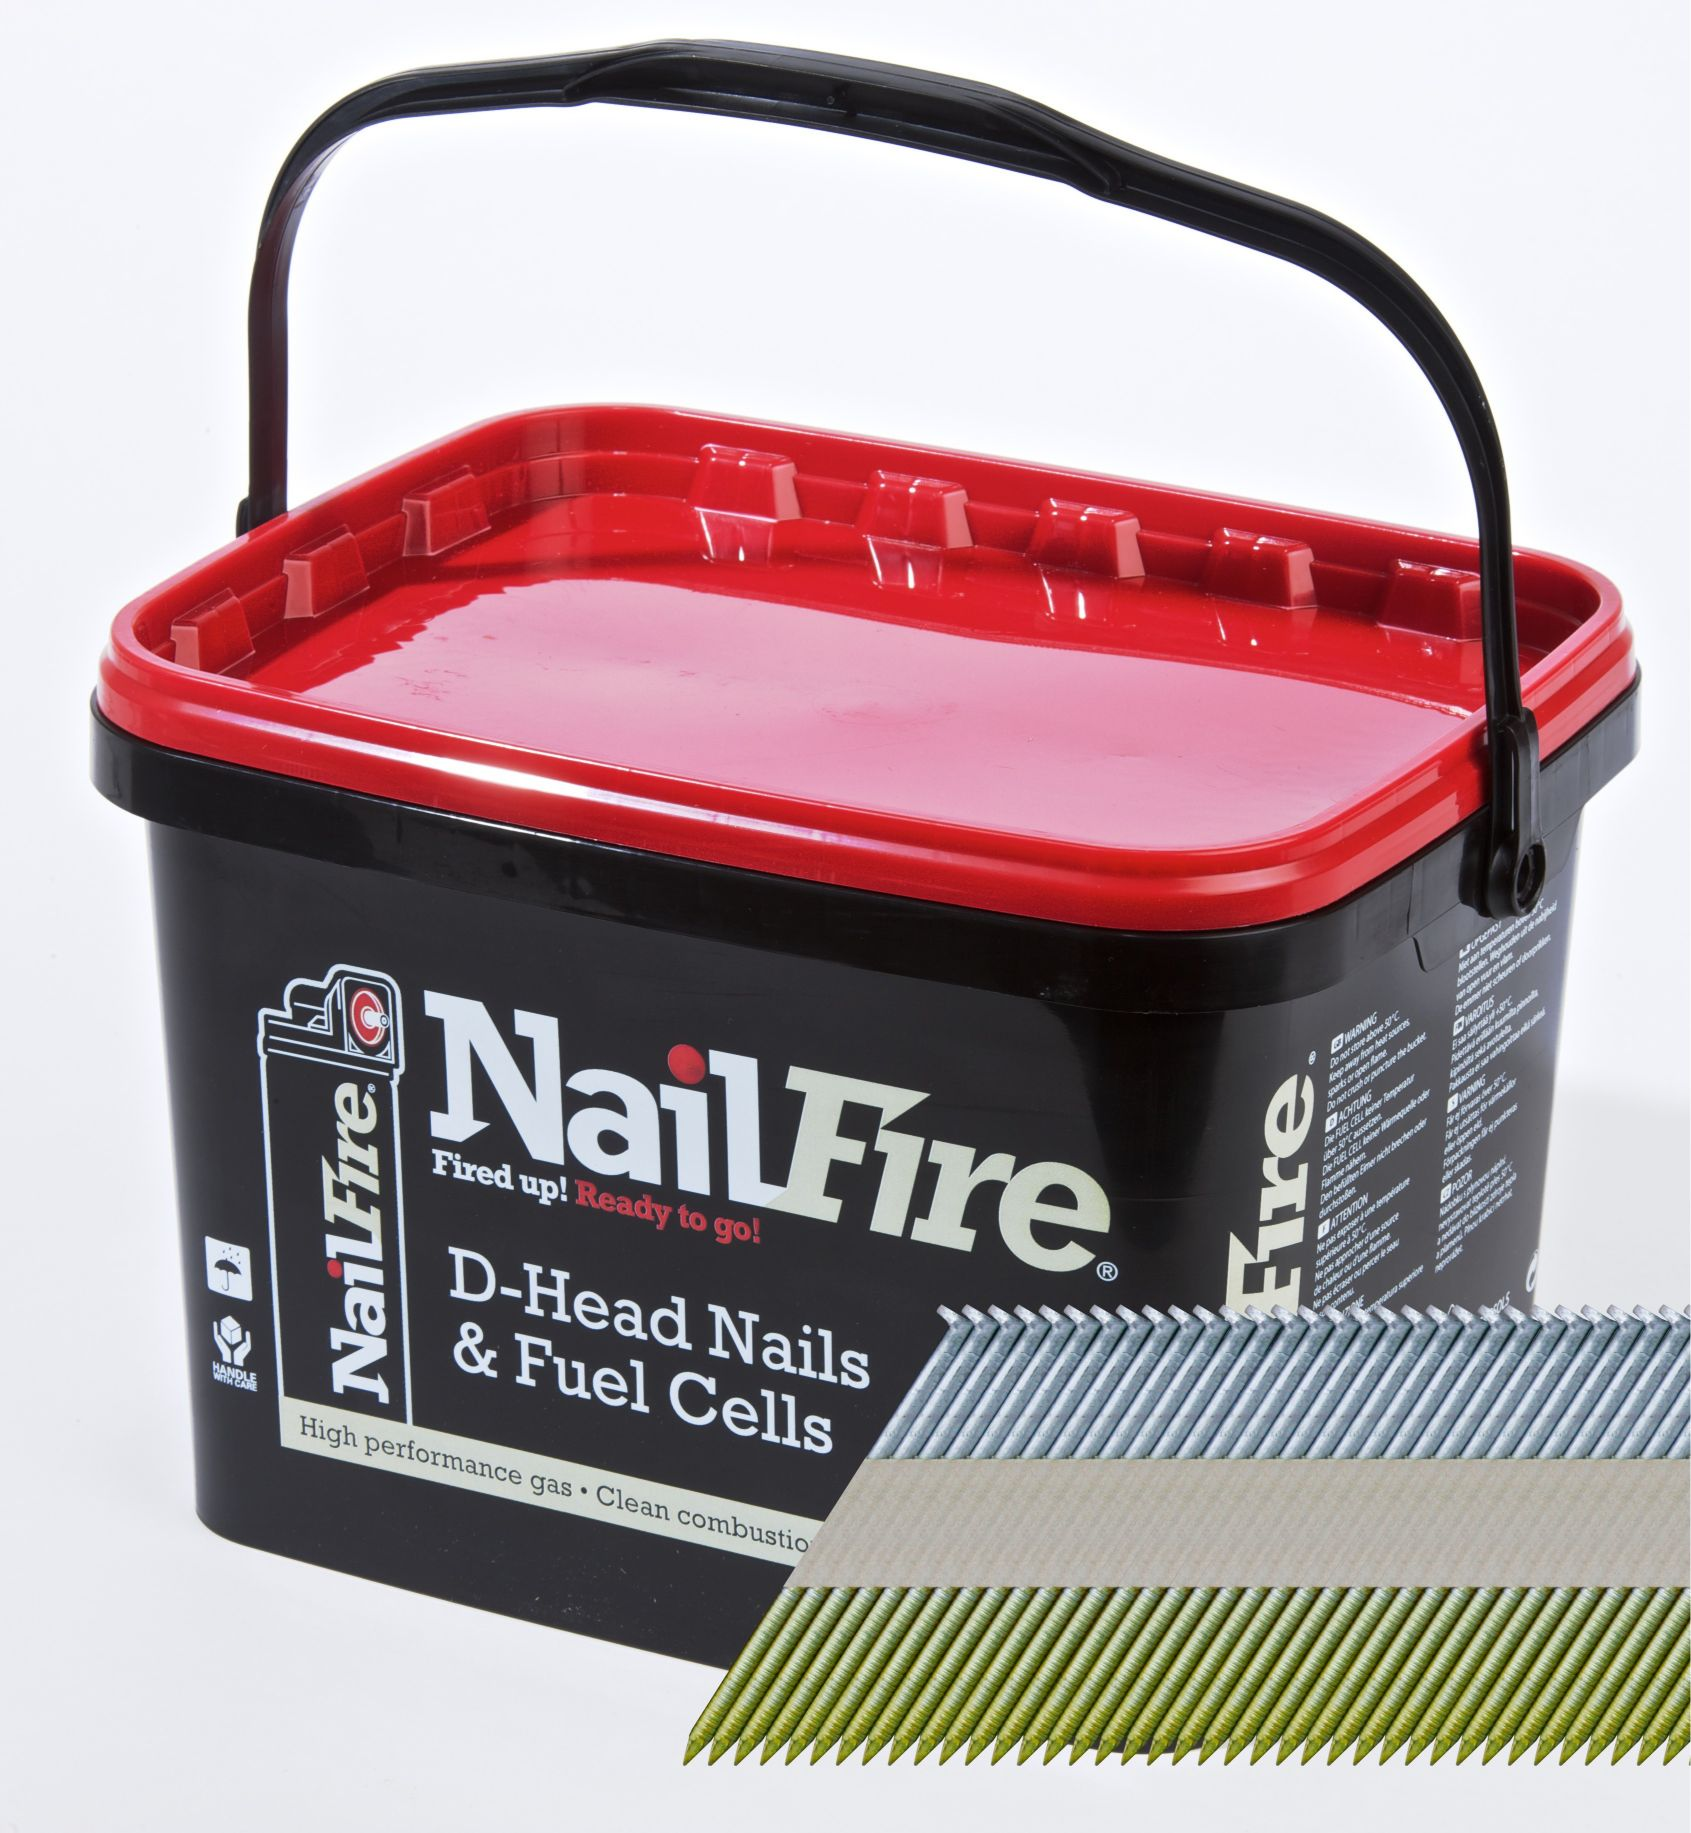 NAILFIRE 1ST FIX E/GALV RING NAILS & GAS 50MM (BOX OF 3000)